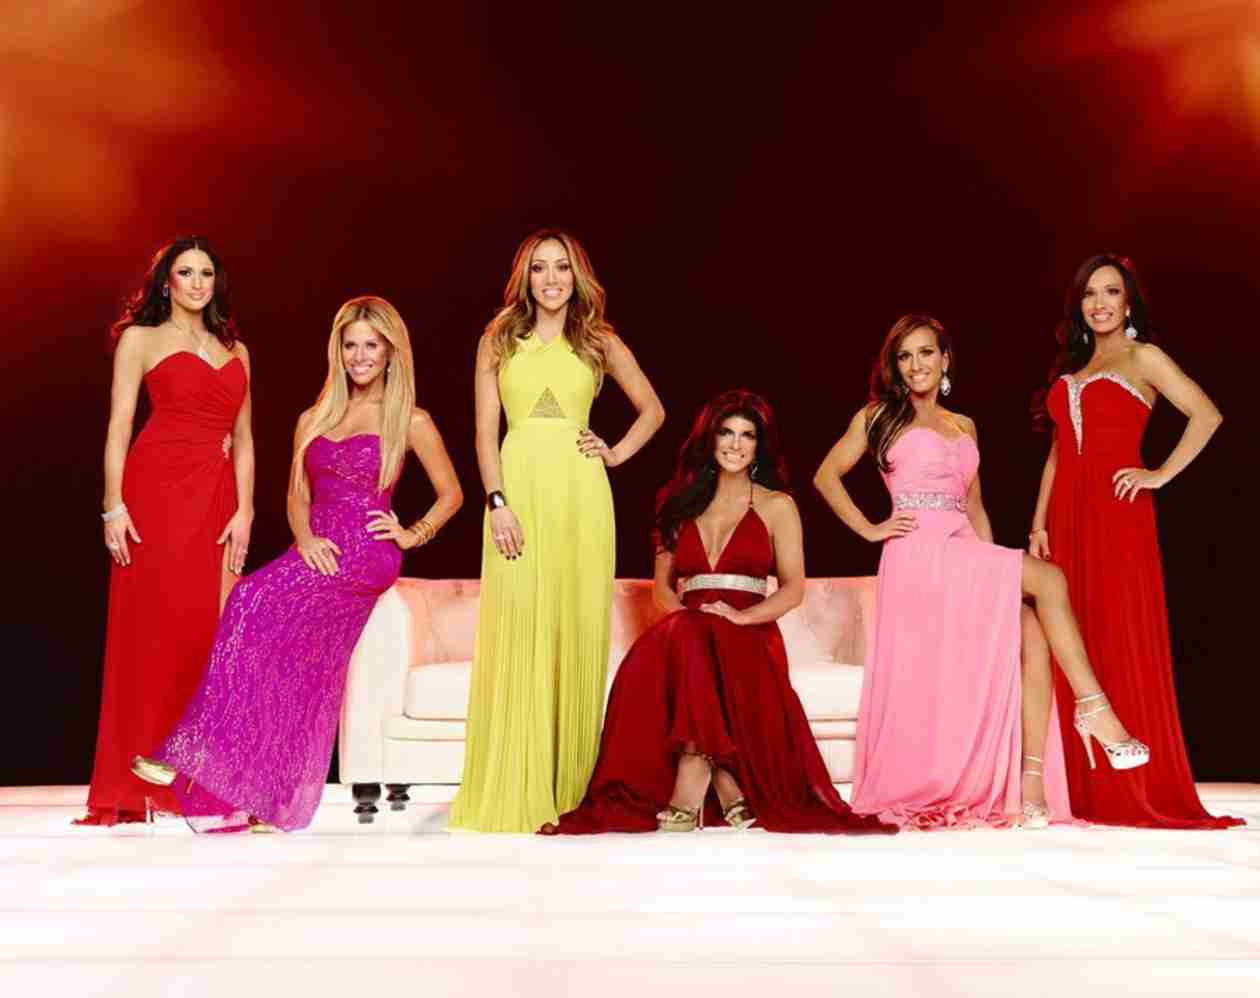 Real Housewives of New Jersey Season 6: How Much Are the Housewives Paid?